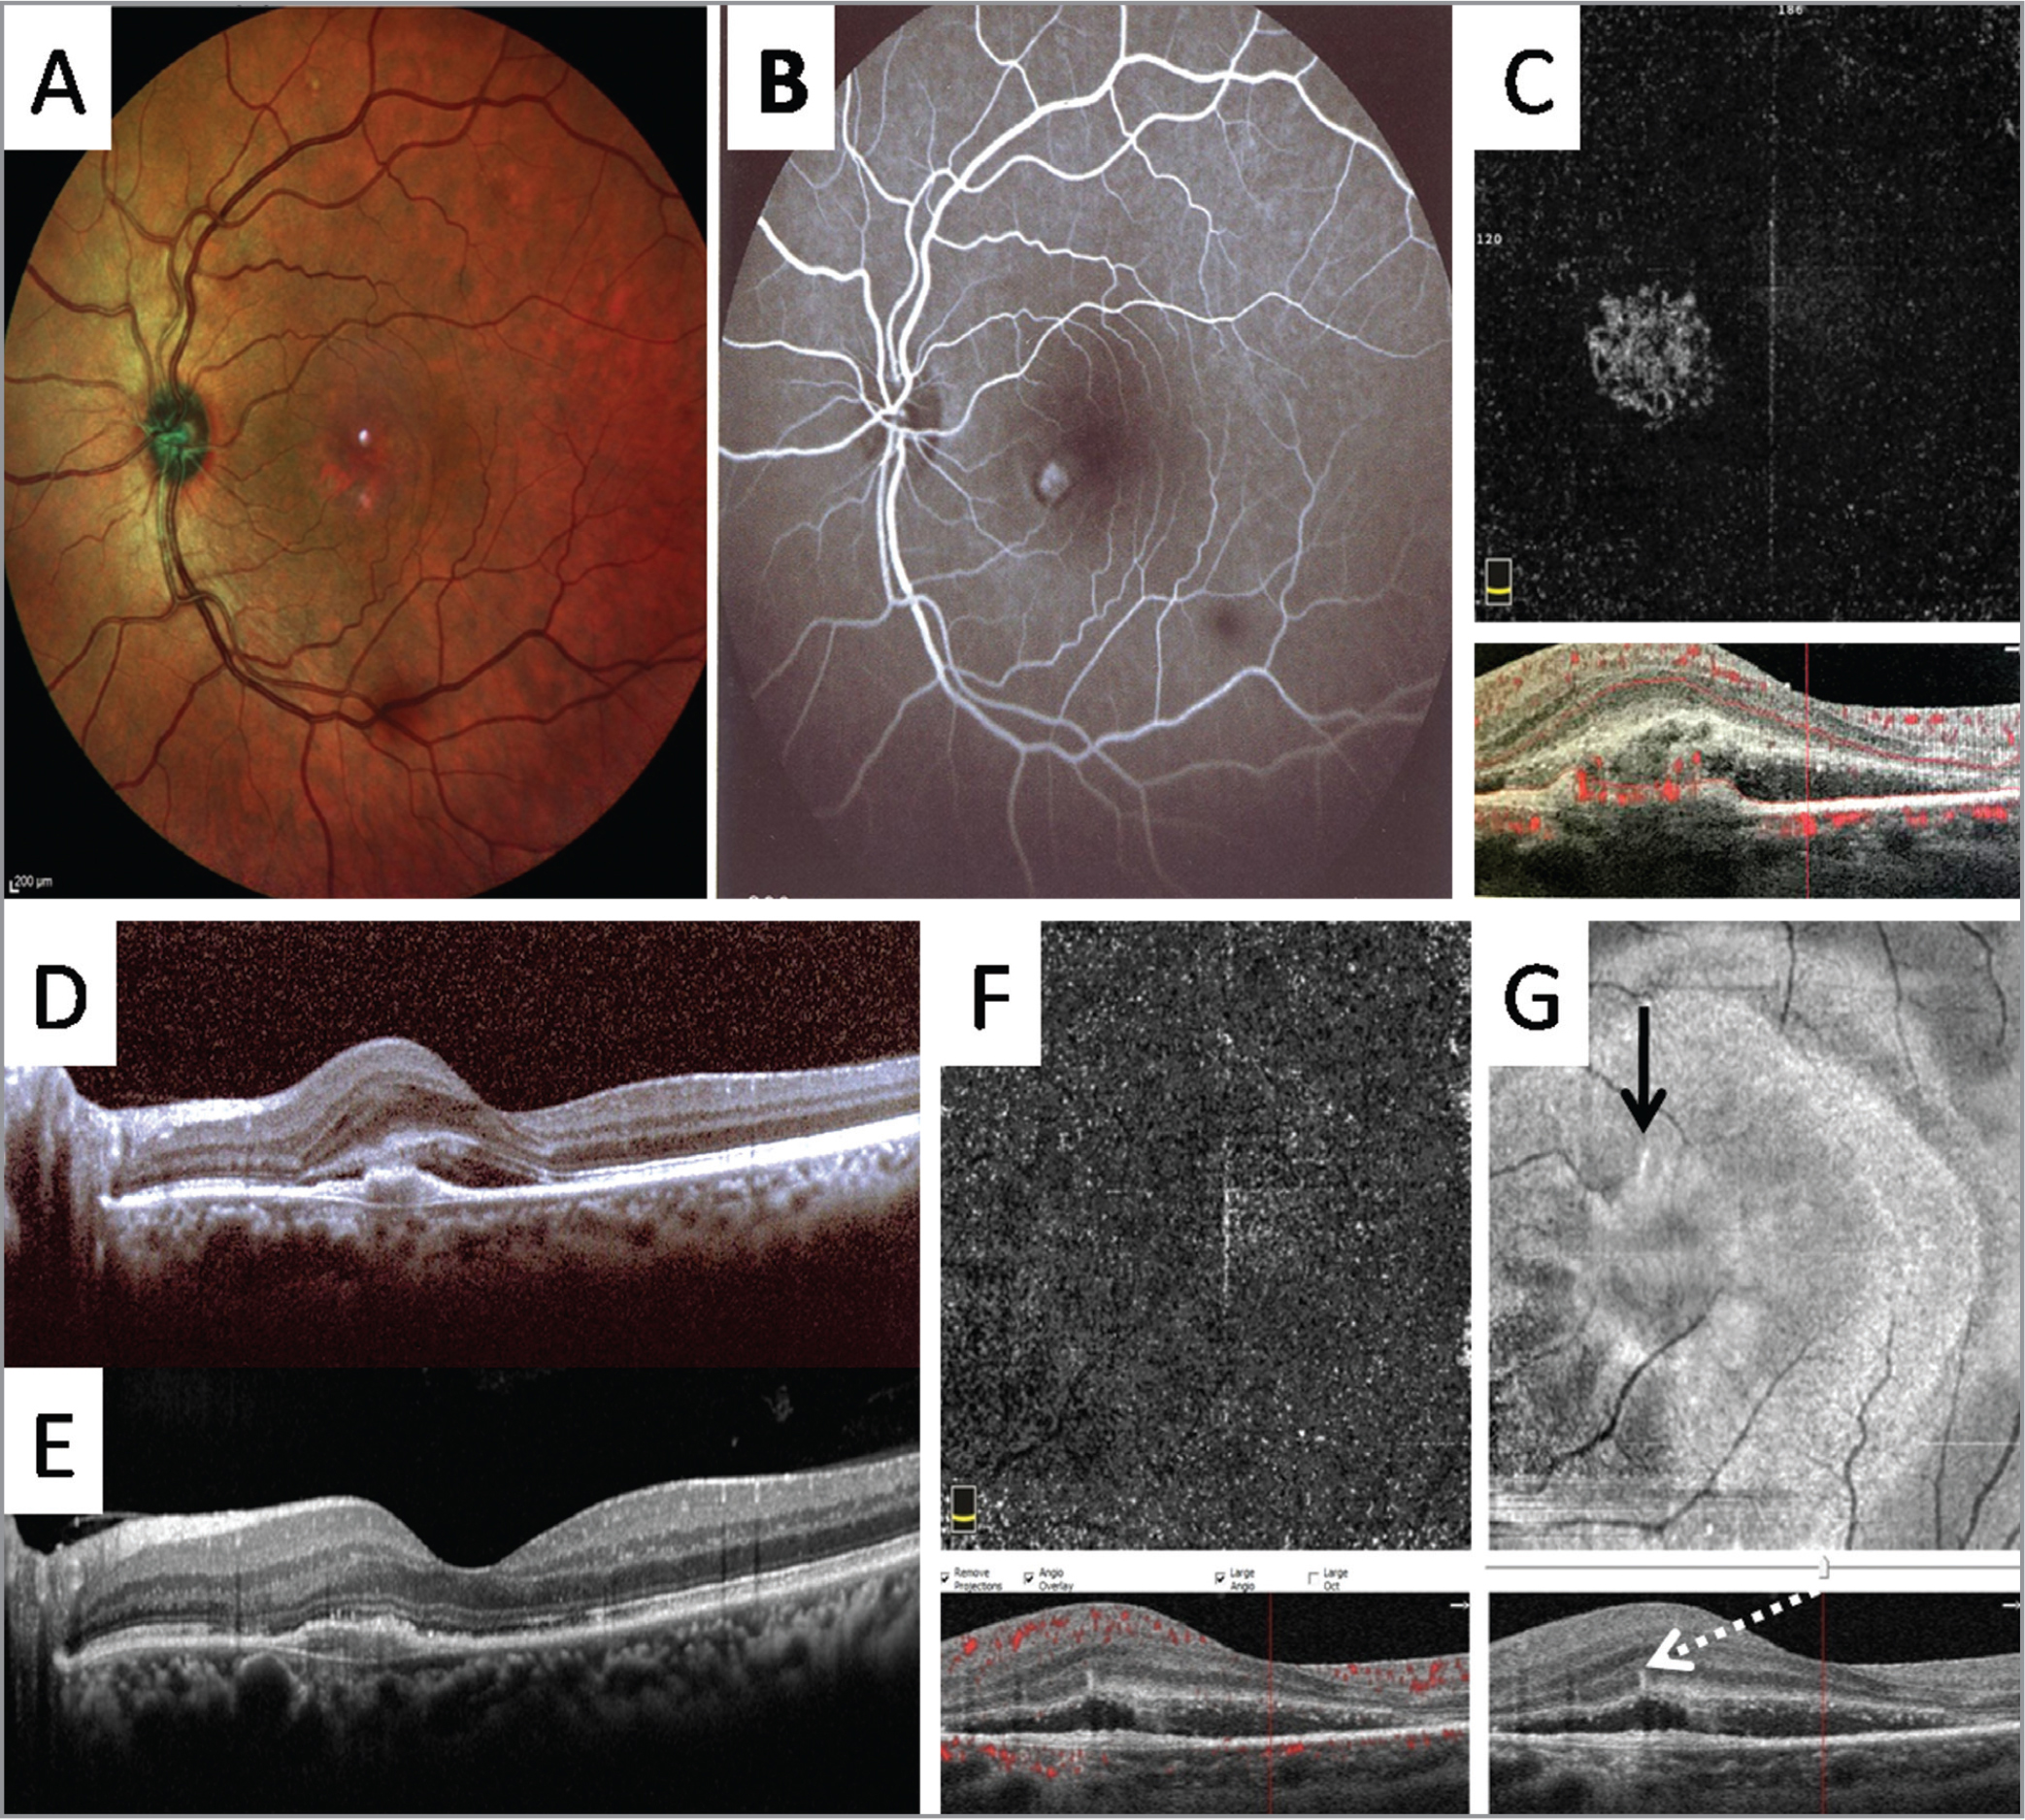 Multicolor fundus image (A), fluorescein angiography (B), en face optical coherence tomography angiography (OCTA) (C, F), OCT (D, E), and en face structural OCT (G) images from a 52-year-old man with idiopathic choroidal neovascularization (CNV). Radial hyperreflective spikes are noted with the en face structural OCT and corresponding pitchfork spikes are present with the OCT B-scan at baseline (black arrow and dashed white arrow, respectively, G). A vascular flow signal is absent in the en face OCTA image (F) corresponding to the radial spikes (G).